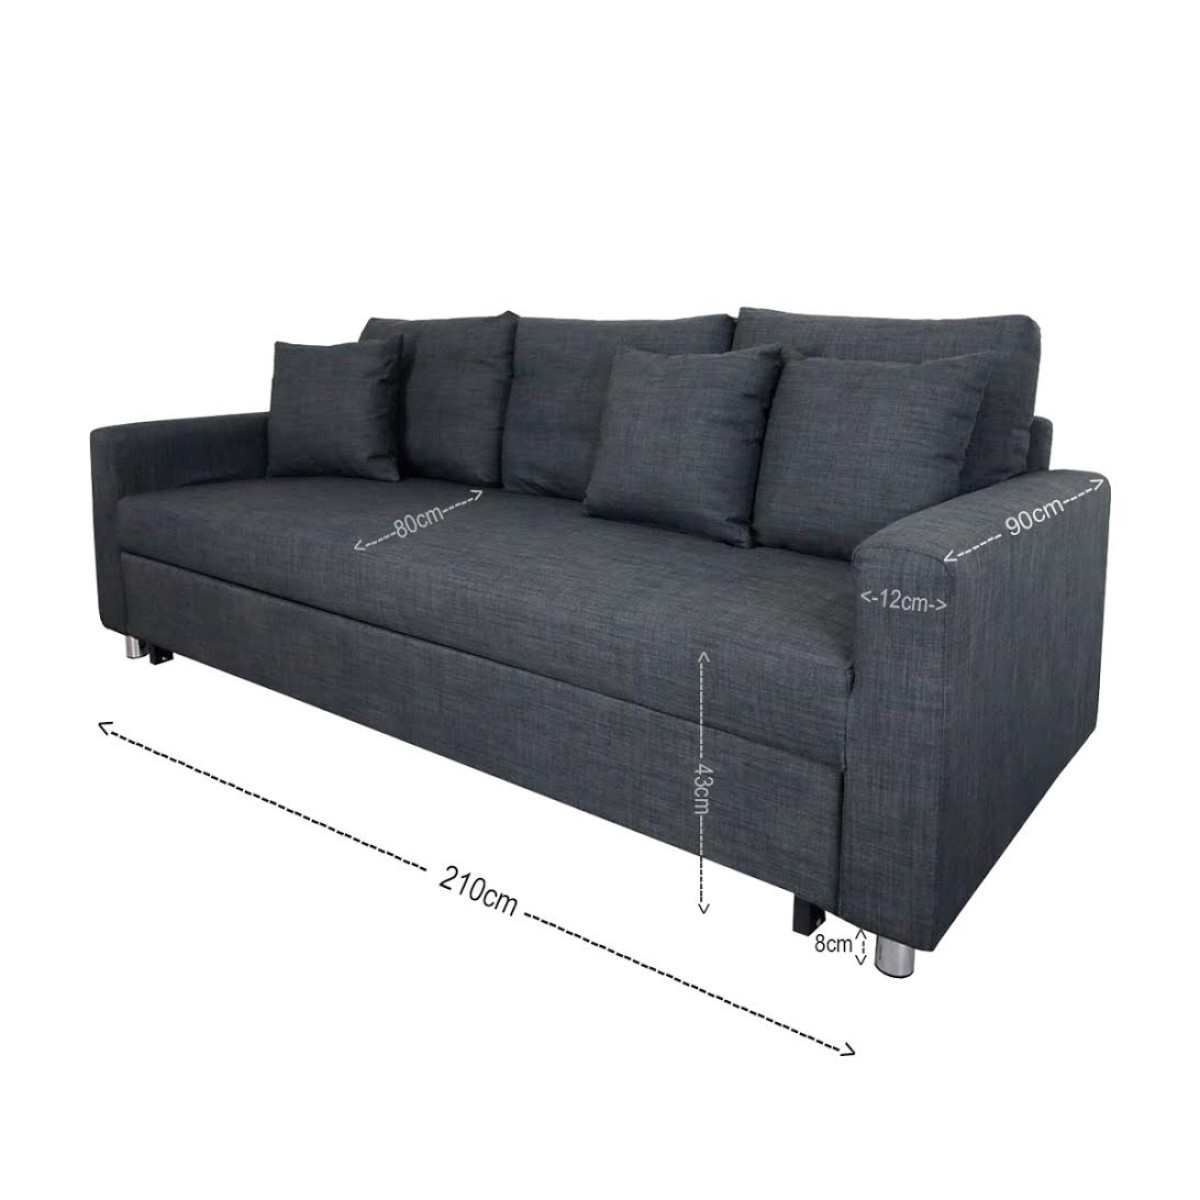 Sofa Shop In Johor Bahru Vernon Sofa Bed Grey 3 Seater